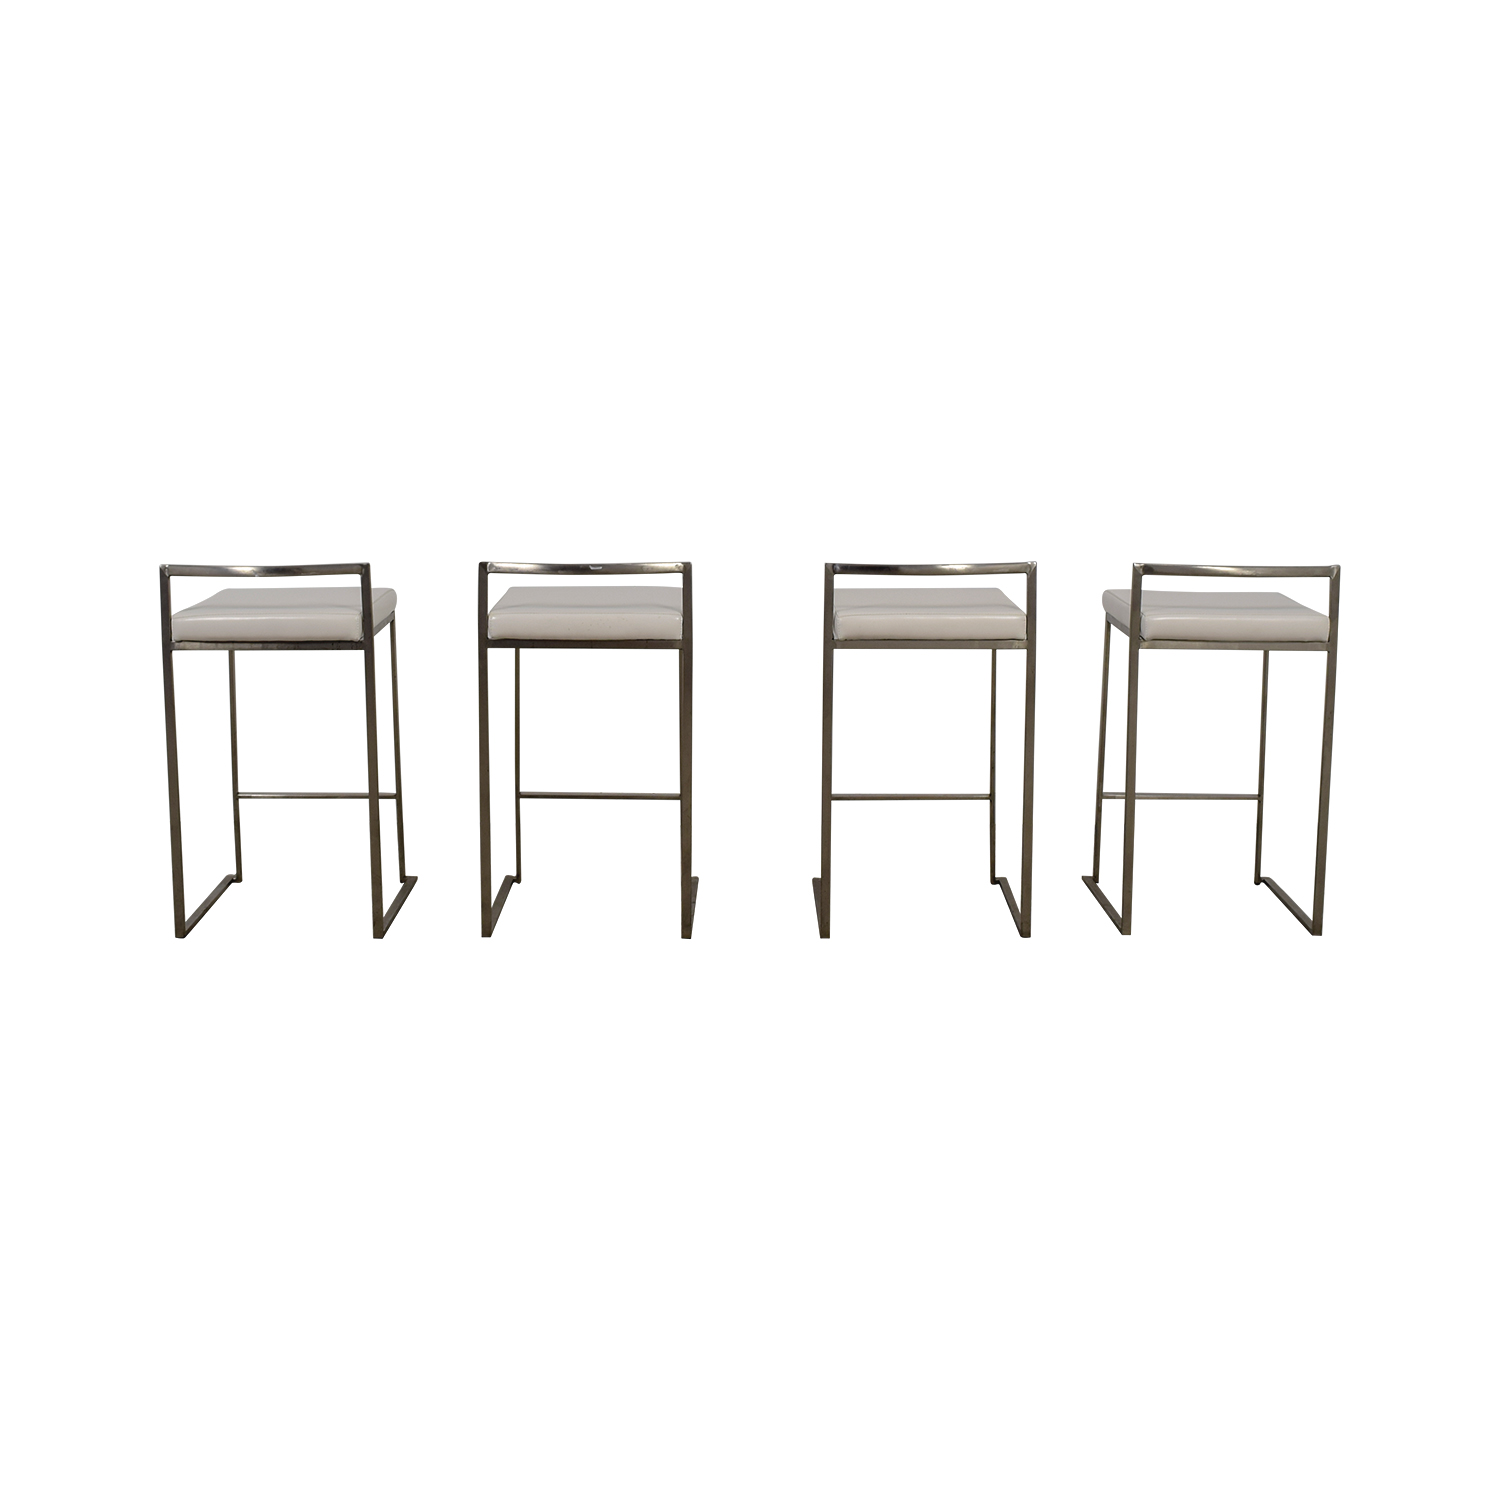 Brayden Studio White Stainless Steel Bar Stools / Stools